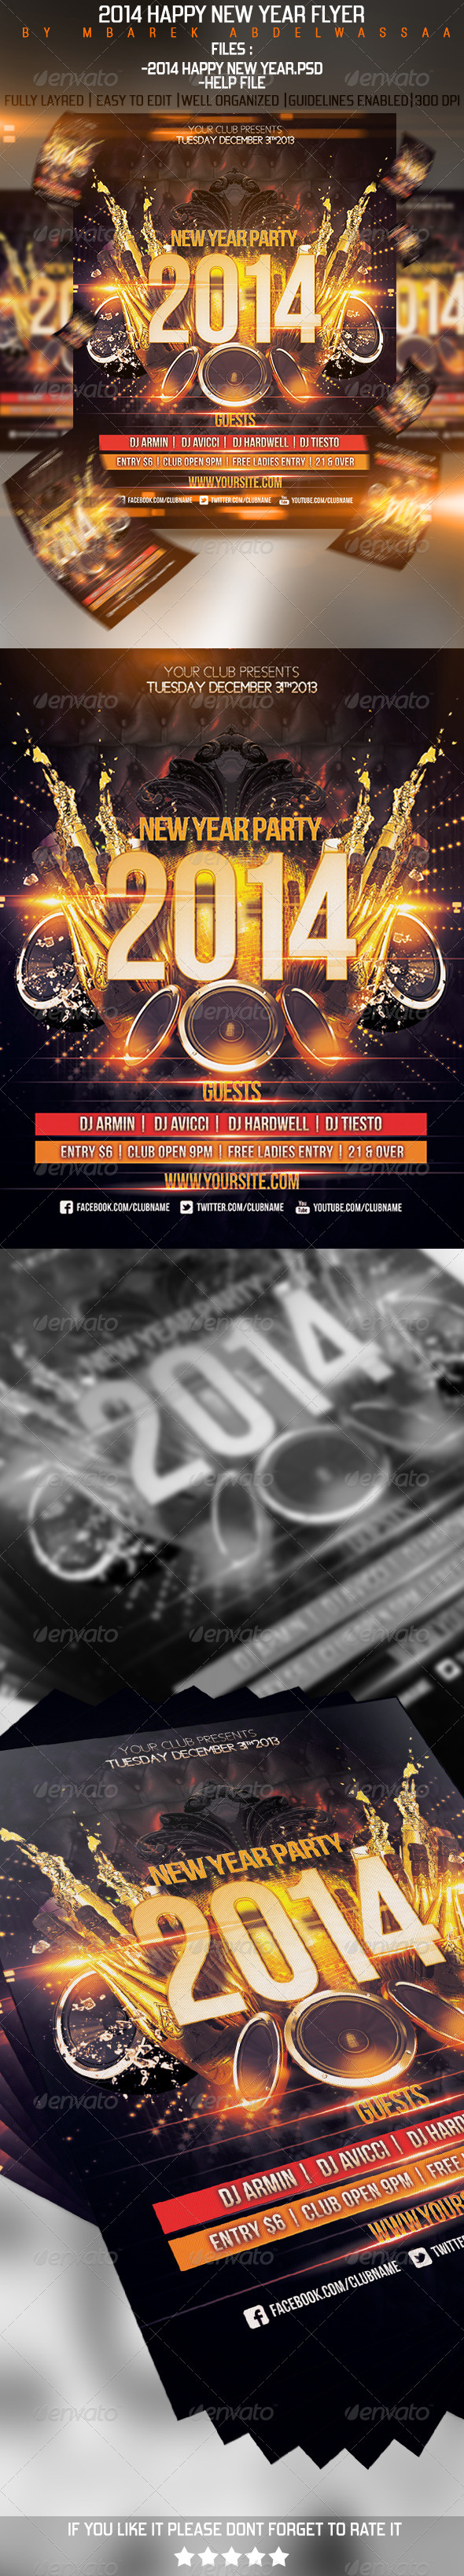 2014 Happy New Year Flyer - Events Flyers